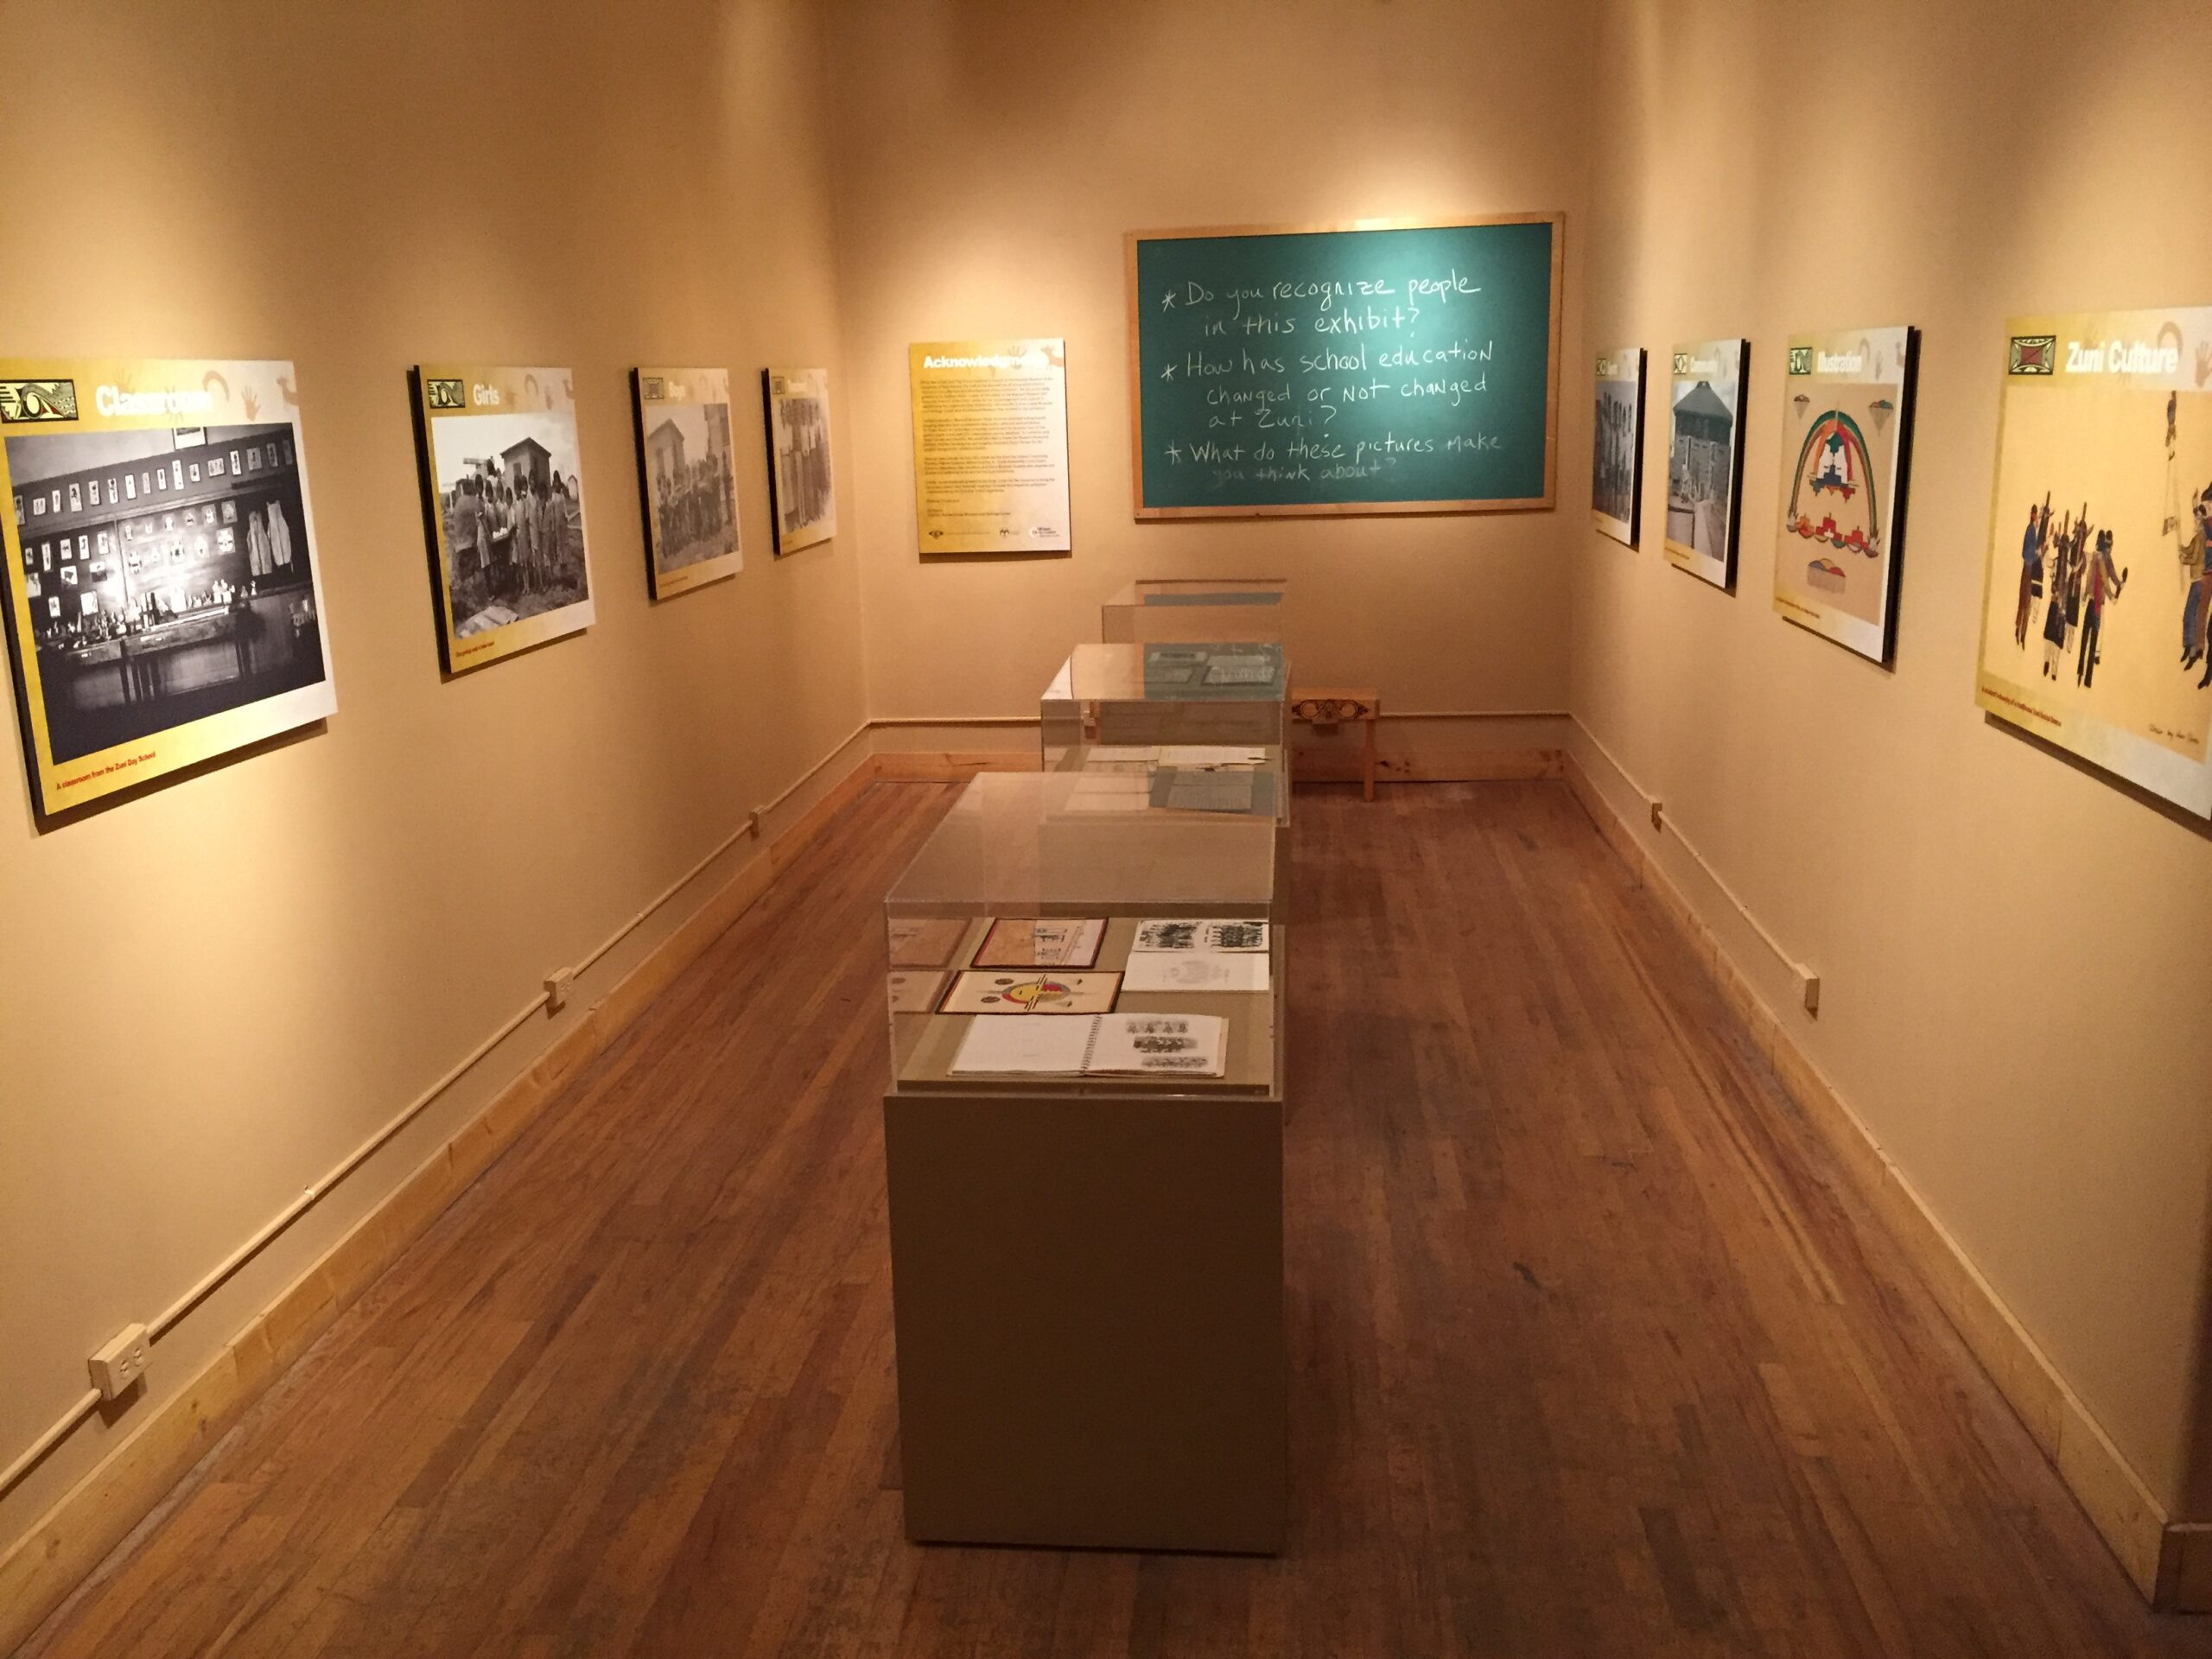 Zuni Day School Exhibit